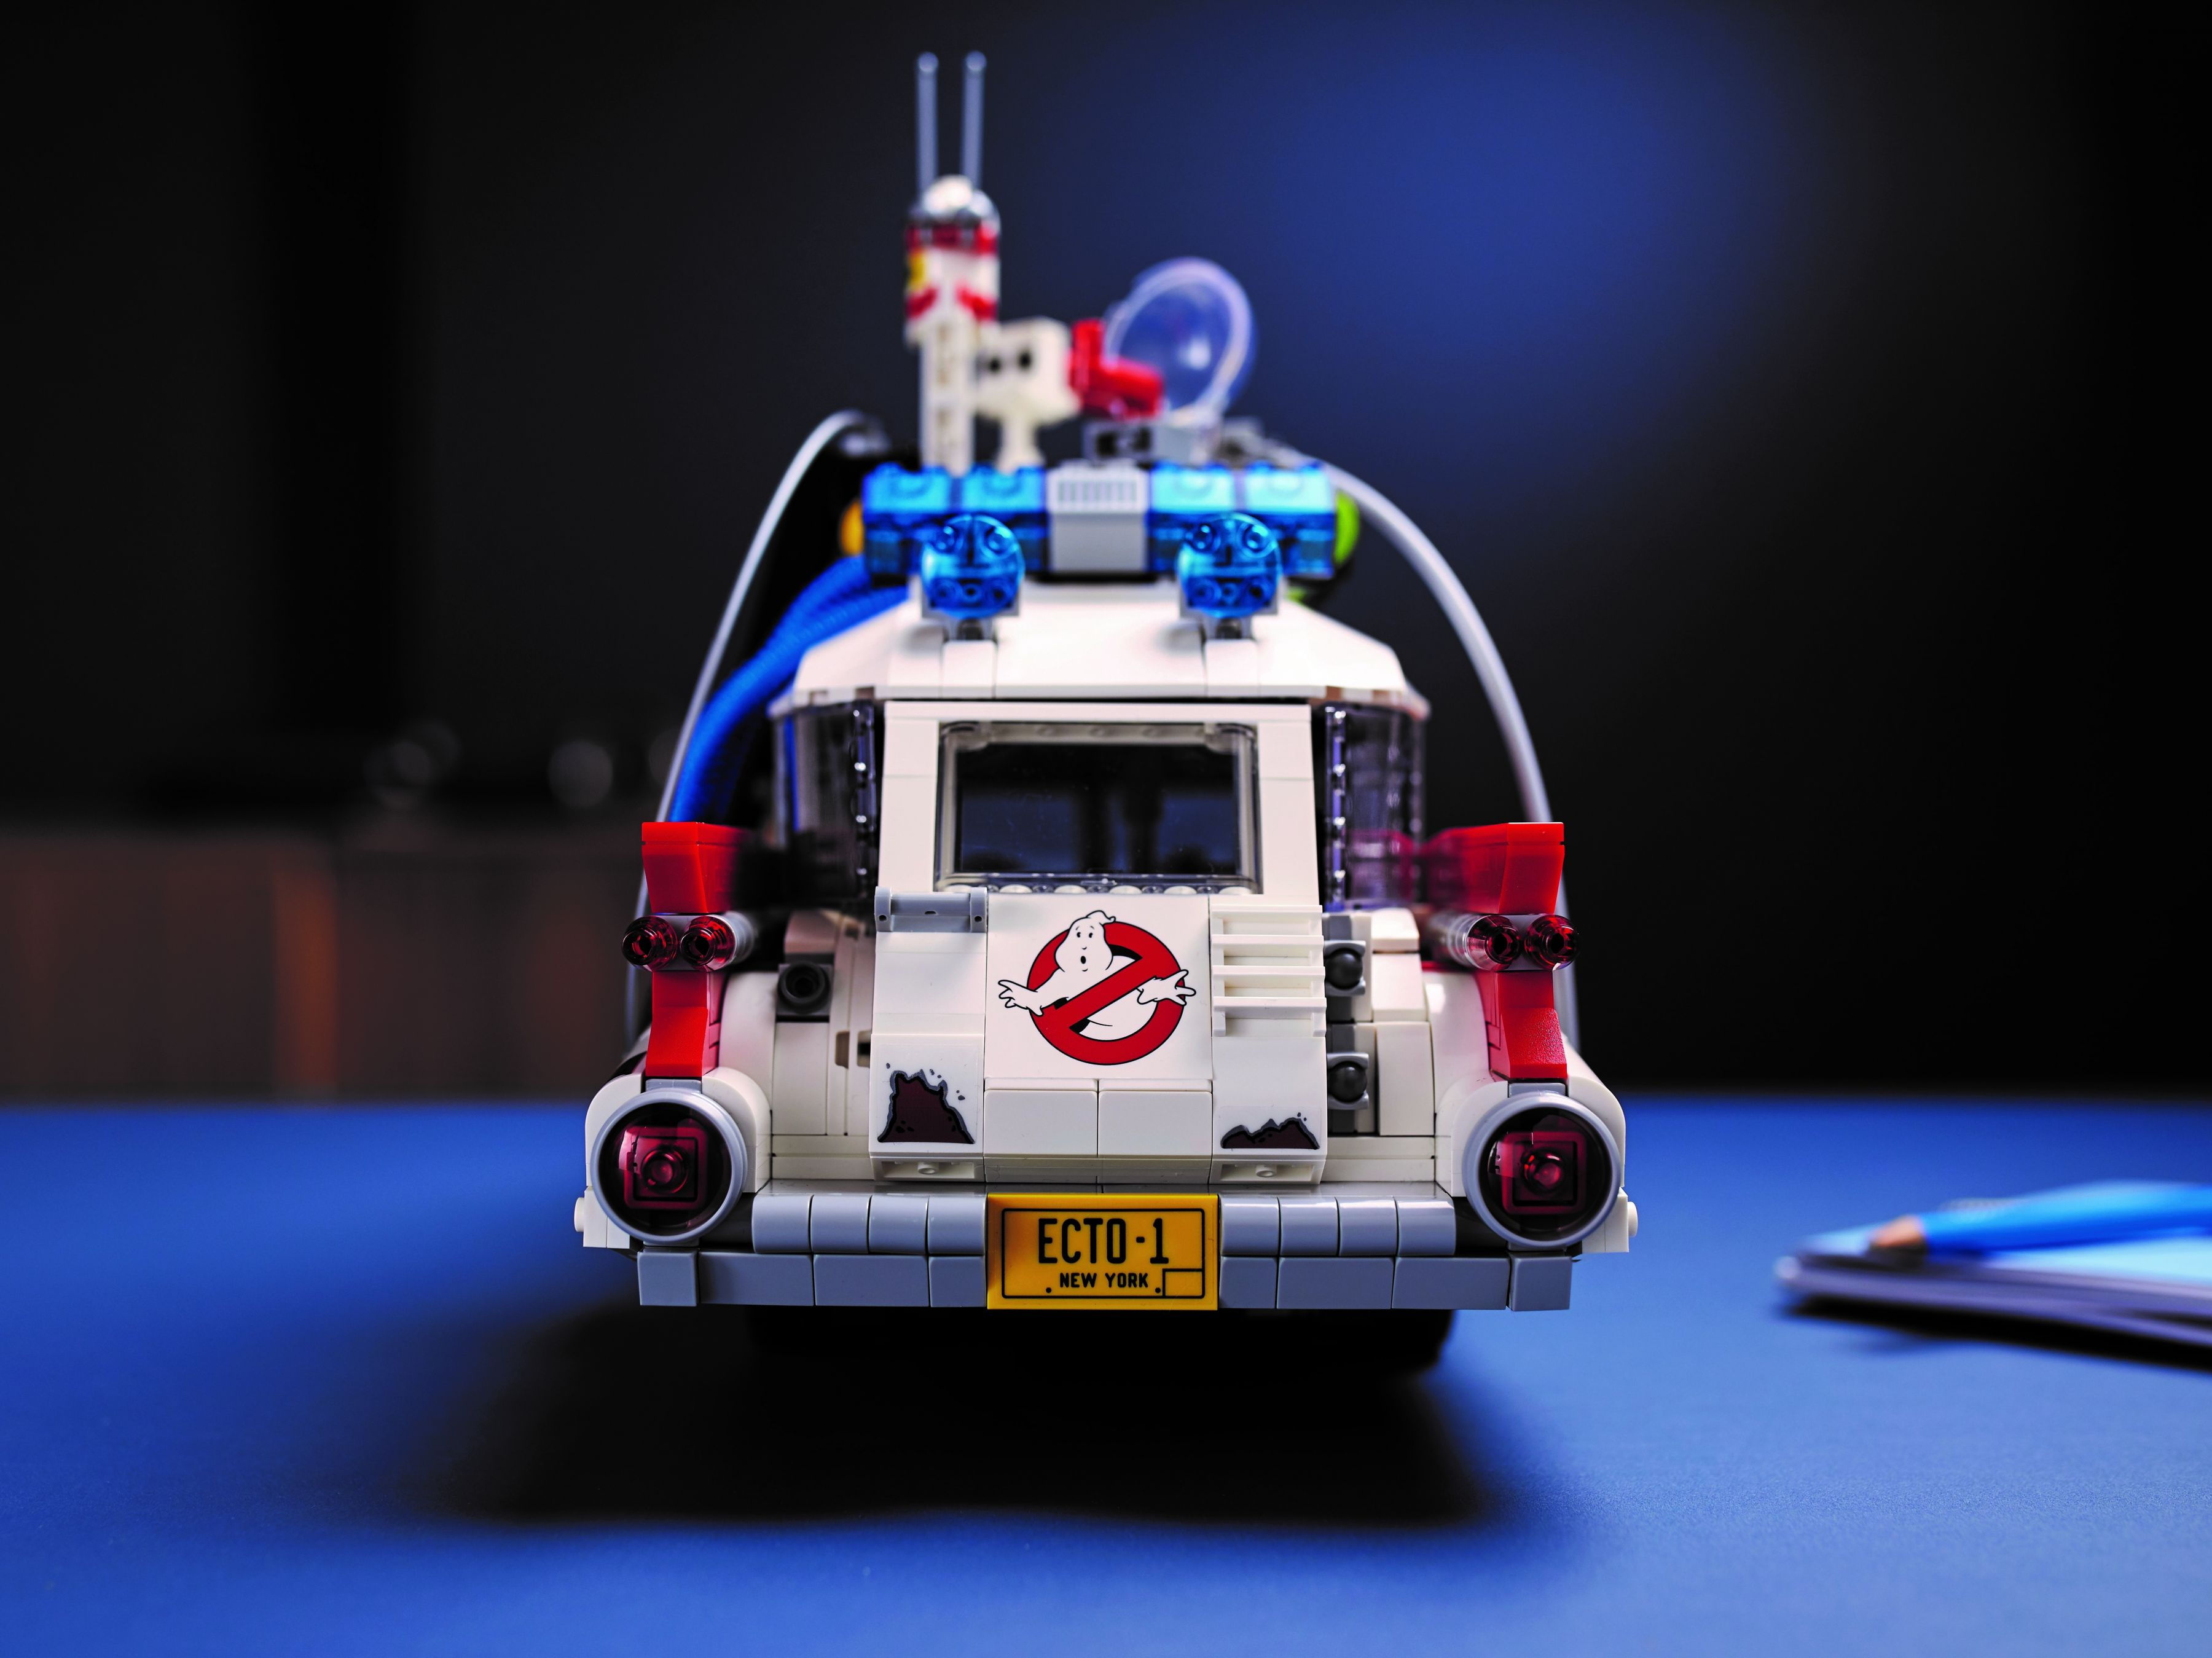 LEGO Advanced Models 10274 Ghostbusters™ ECTO-1 LEGO_10274_alt18.jpg